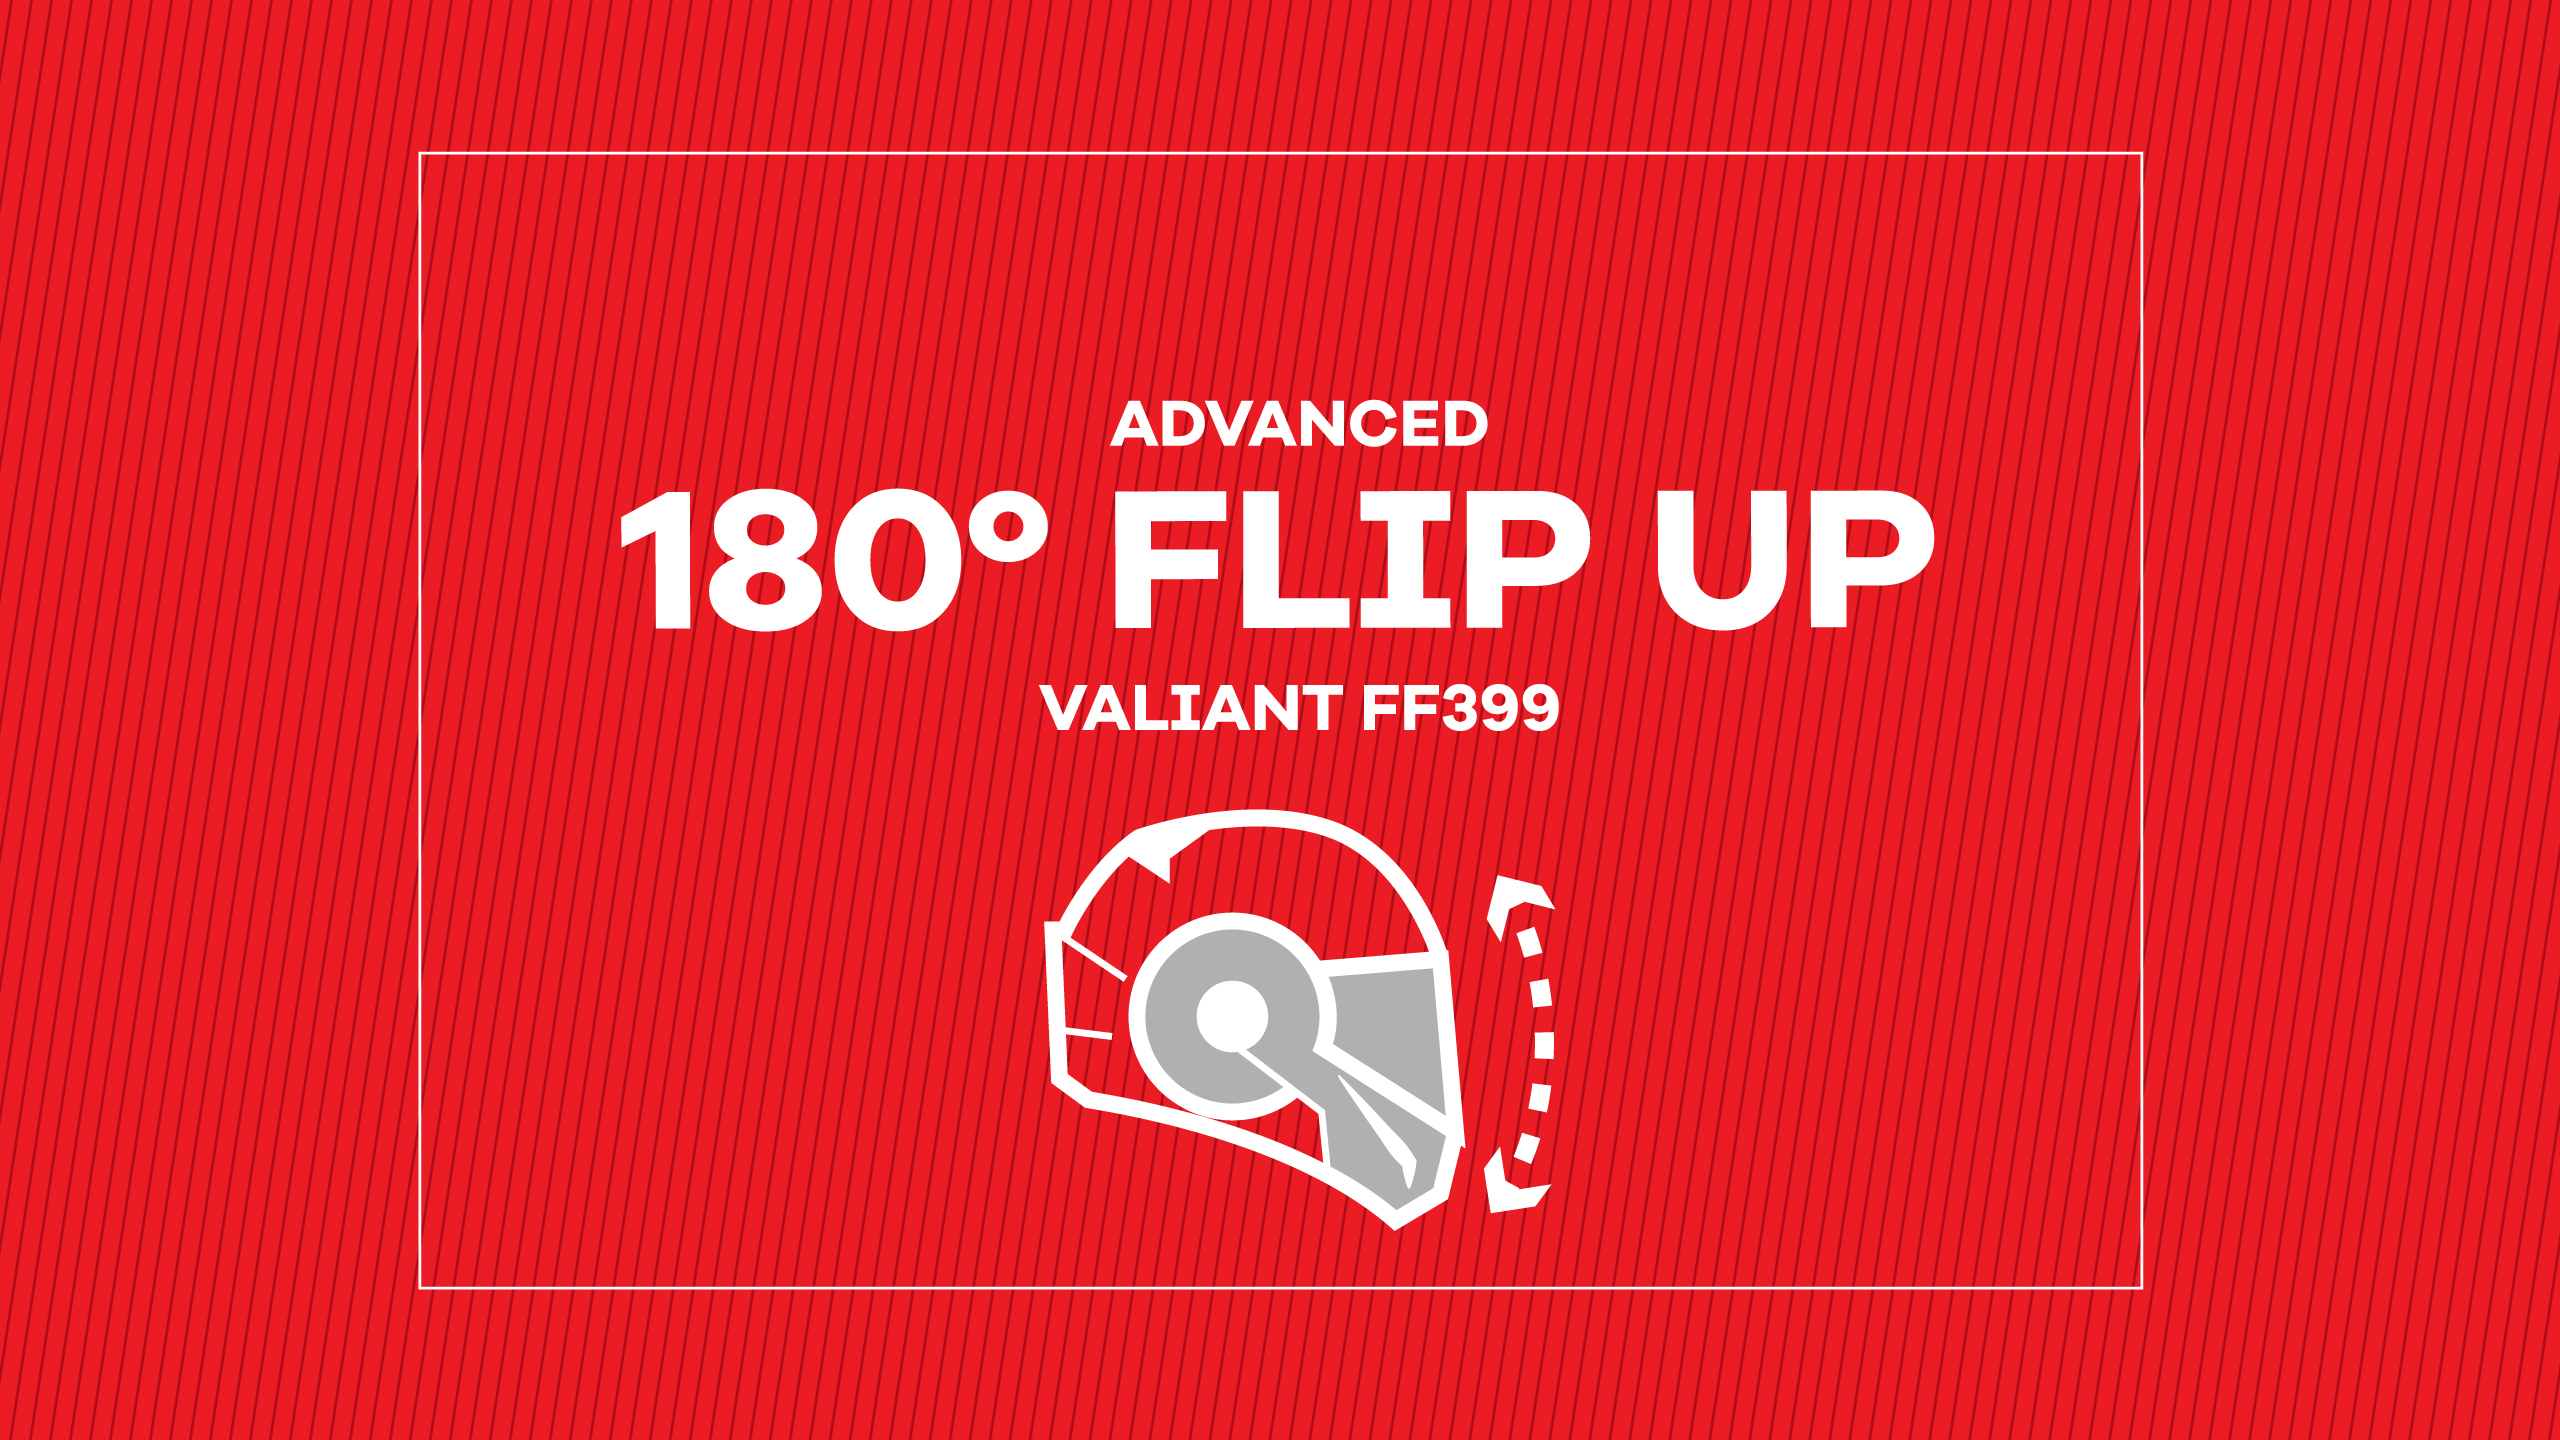 VALIANT FLIP UP